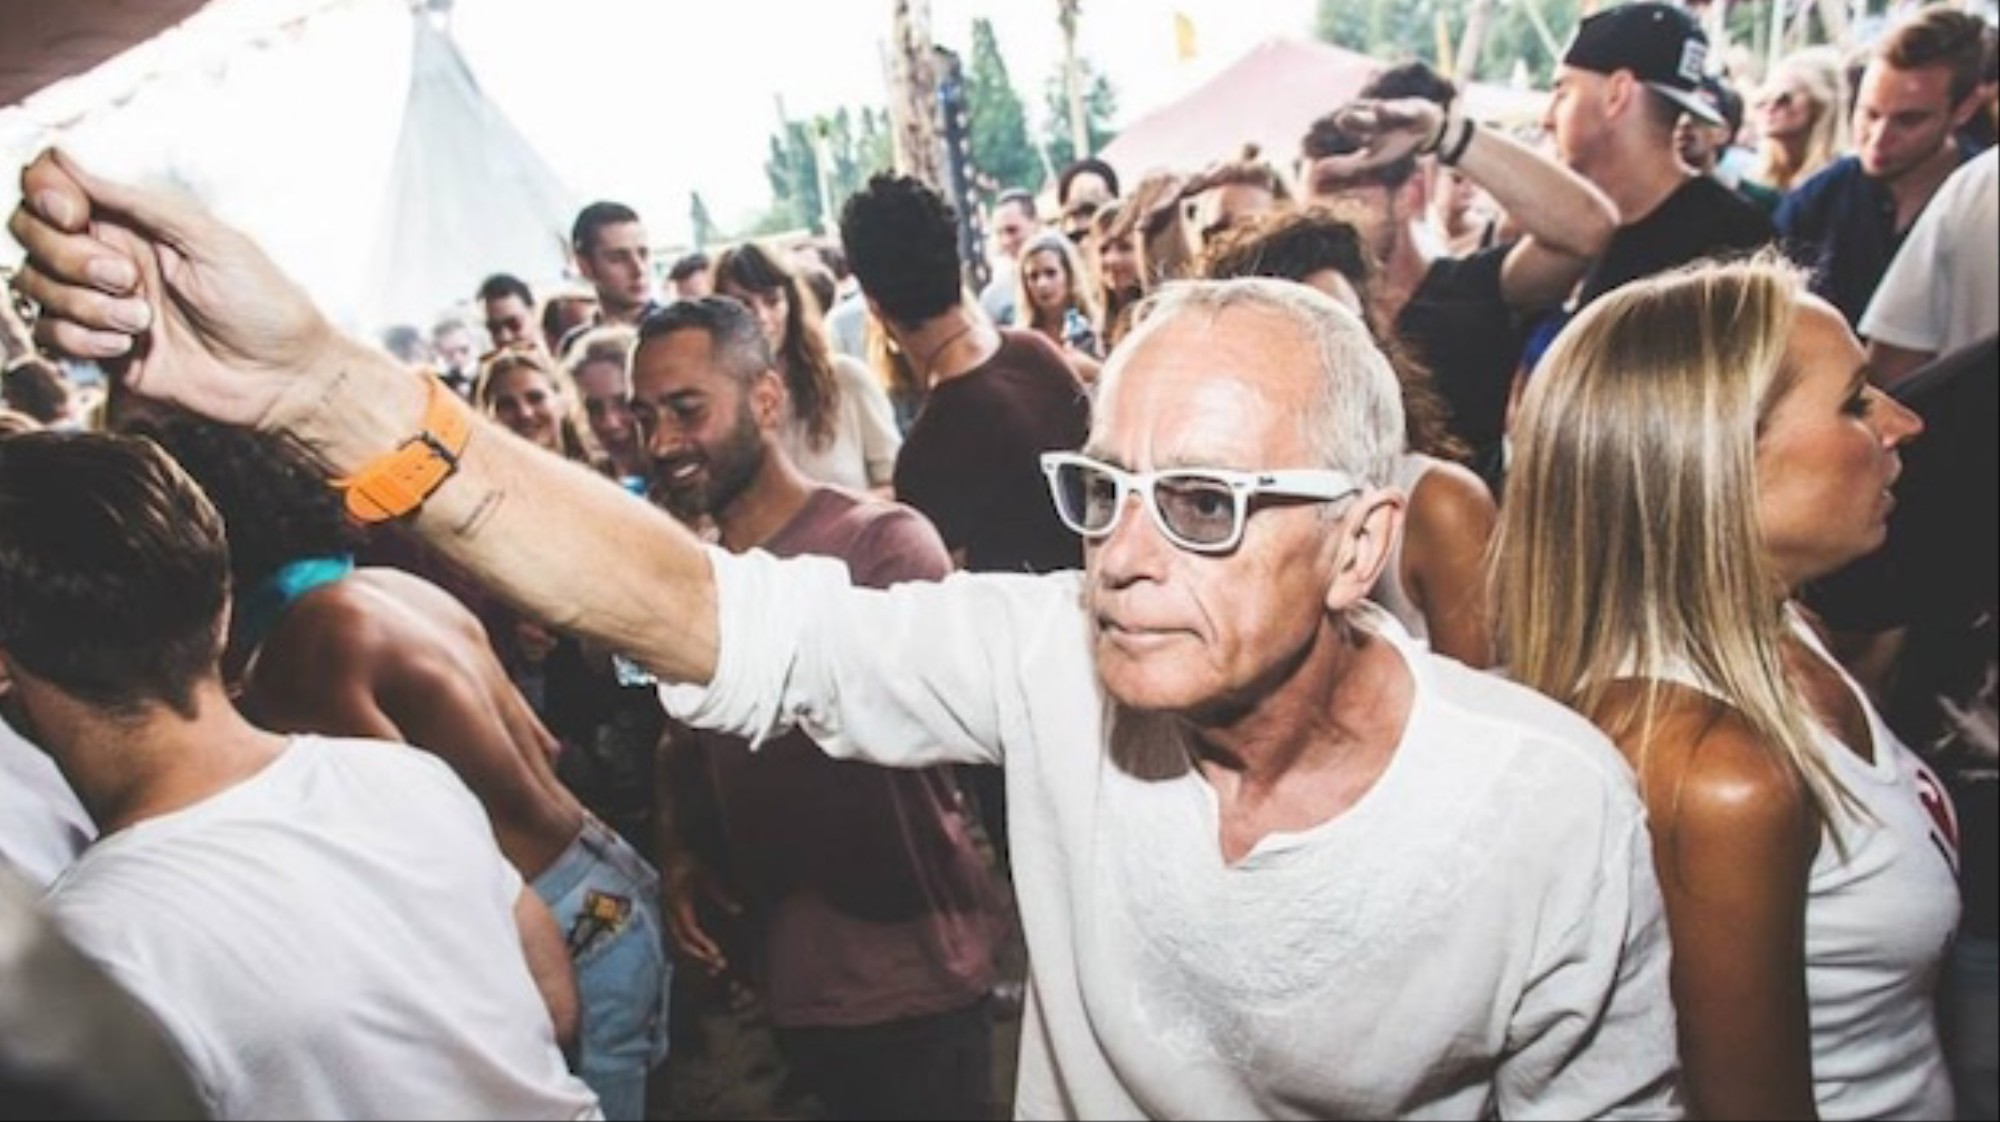 Old Age Party Throwers: The DJs who Ventured Past 40 - VICE